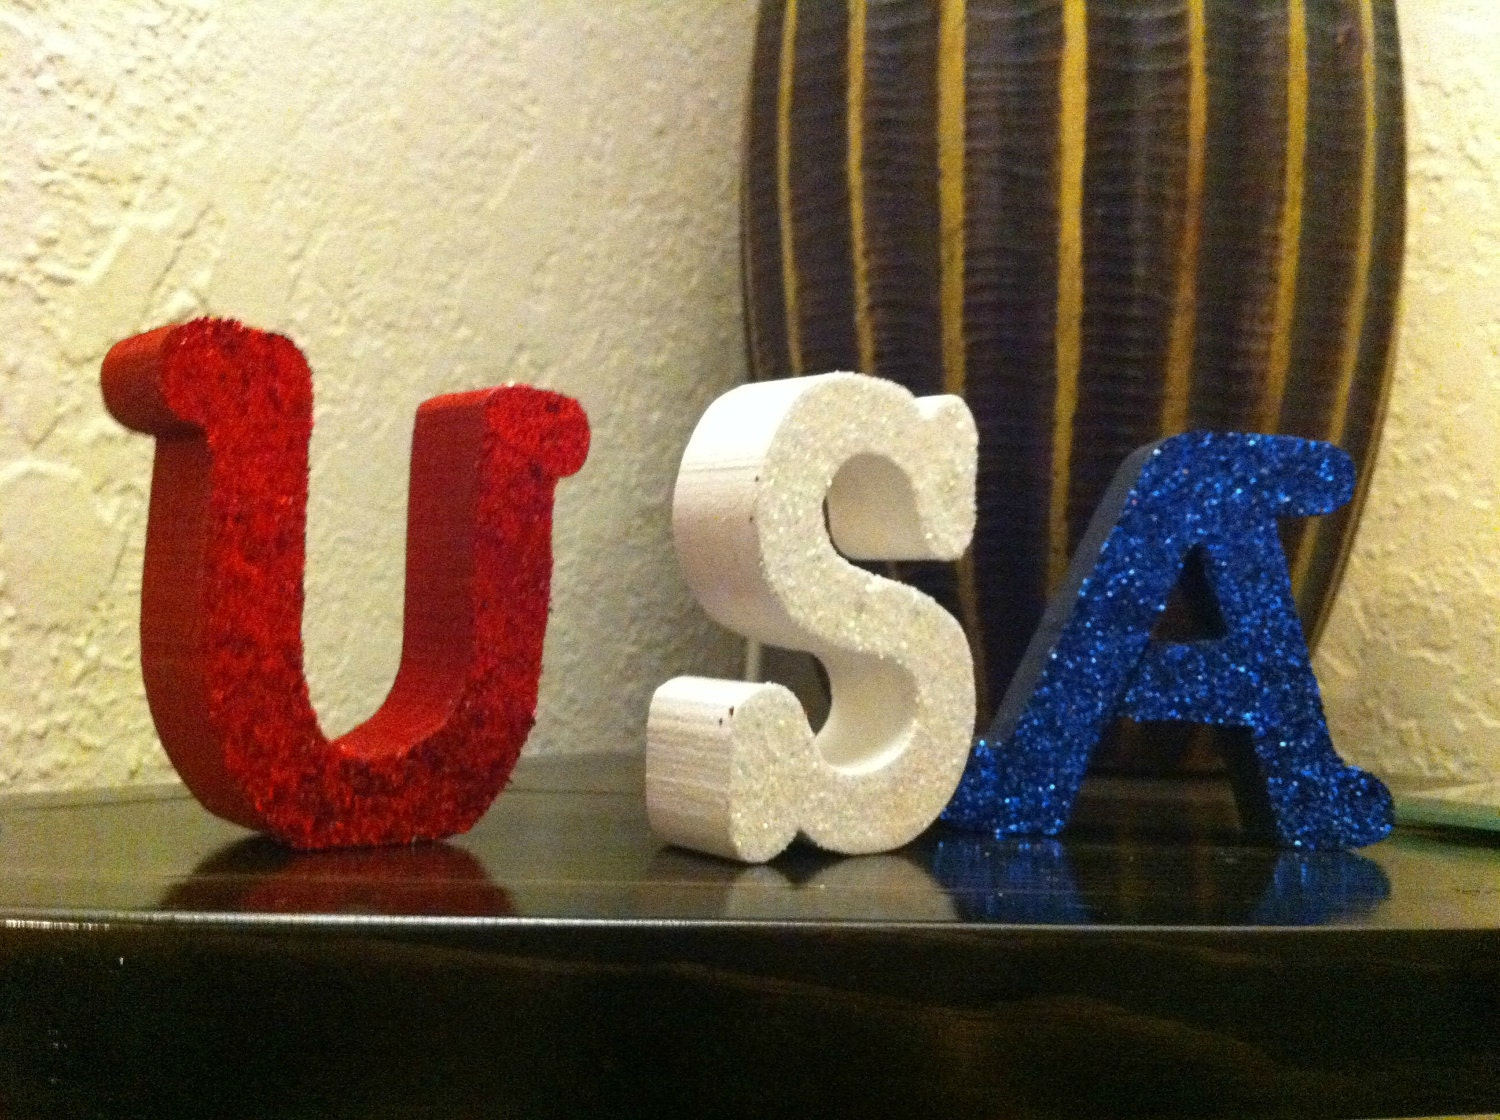 USA--Red, White, and Blue Mini Wood Letter Set